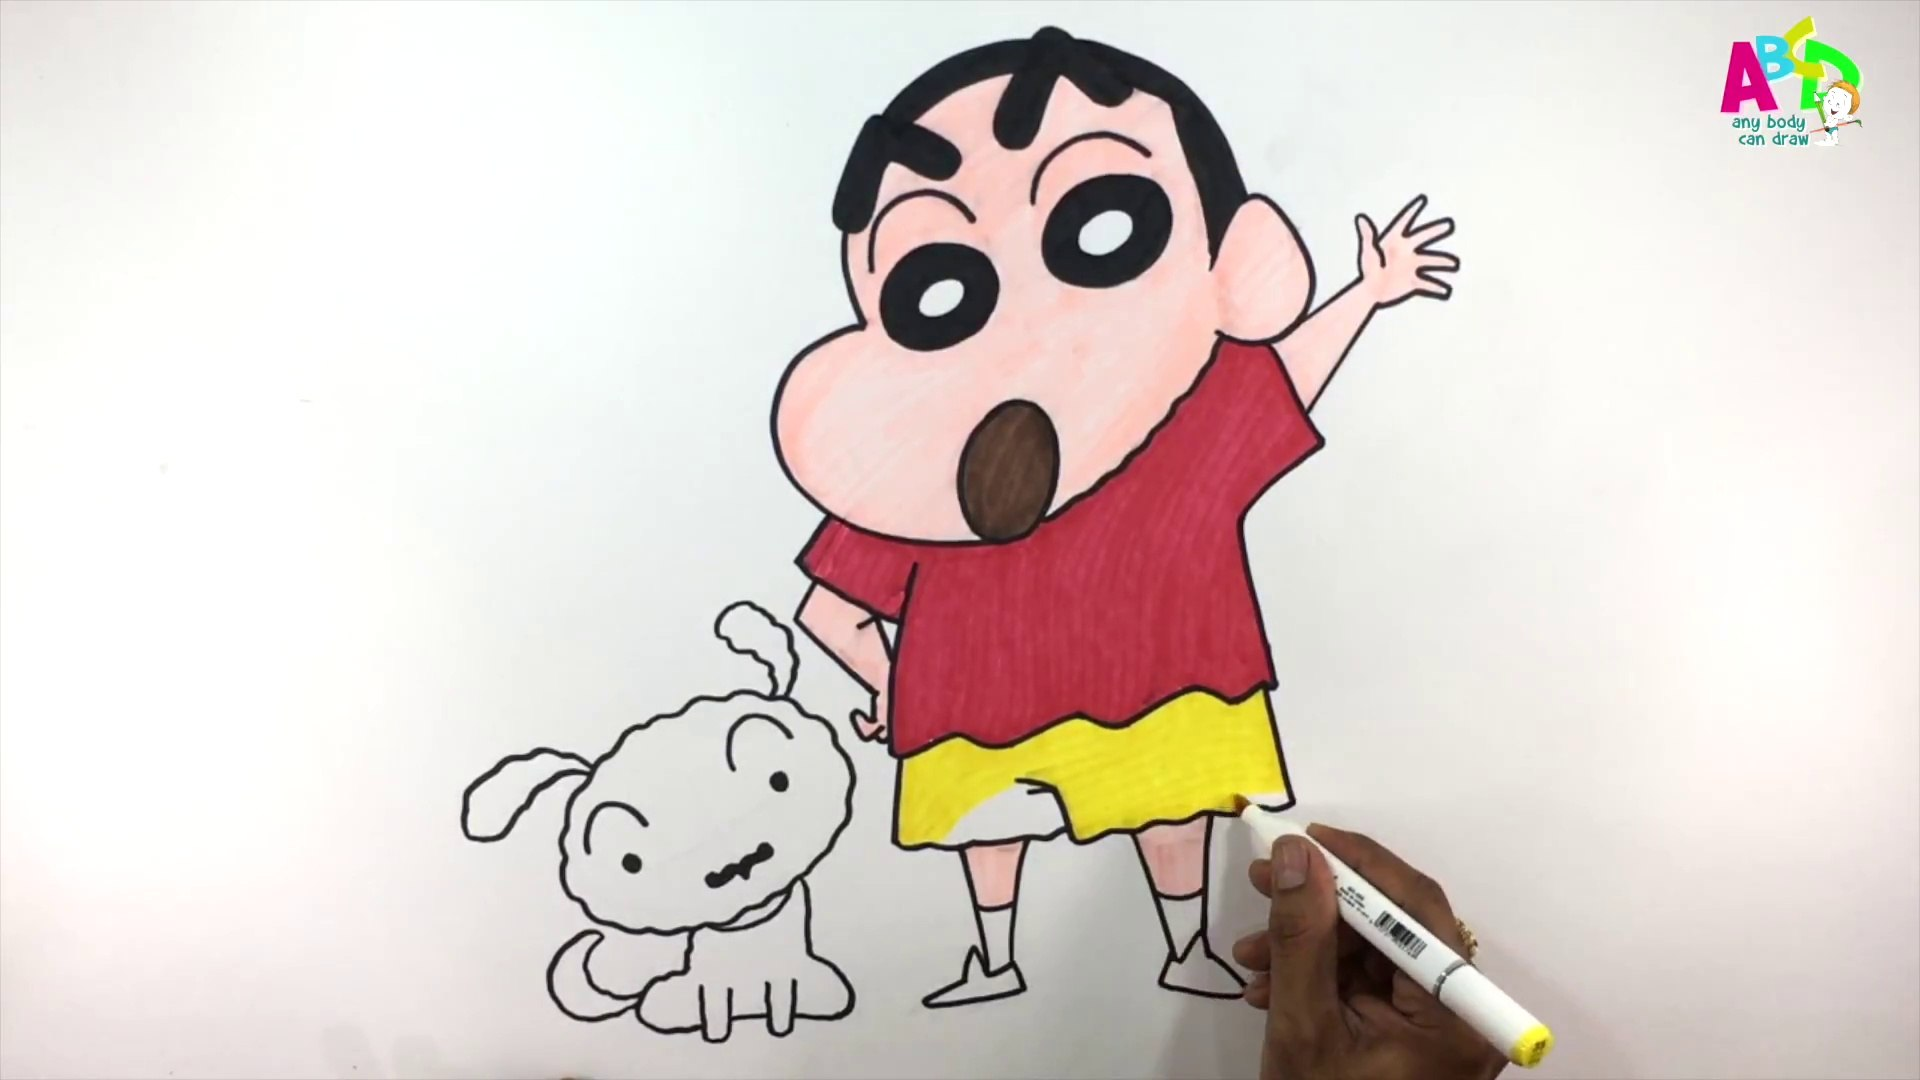 How To Draw Shin Chan Ii Learn To Draw Color Shin Chan In Easy Steps Abcdanybodycandraw Video Dailymotion